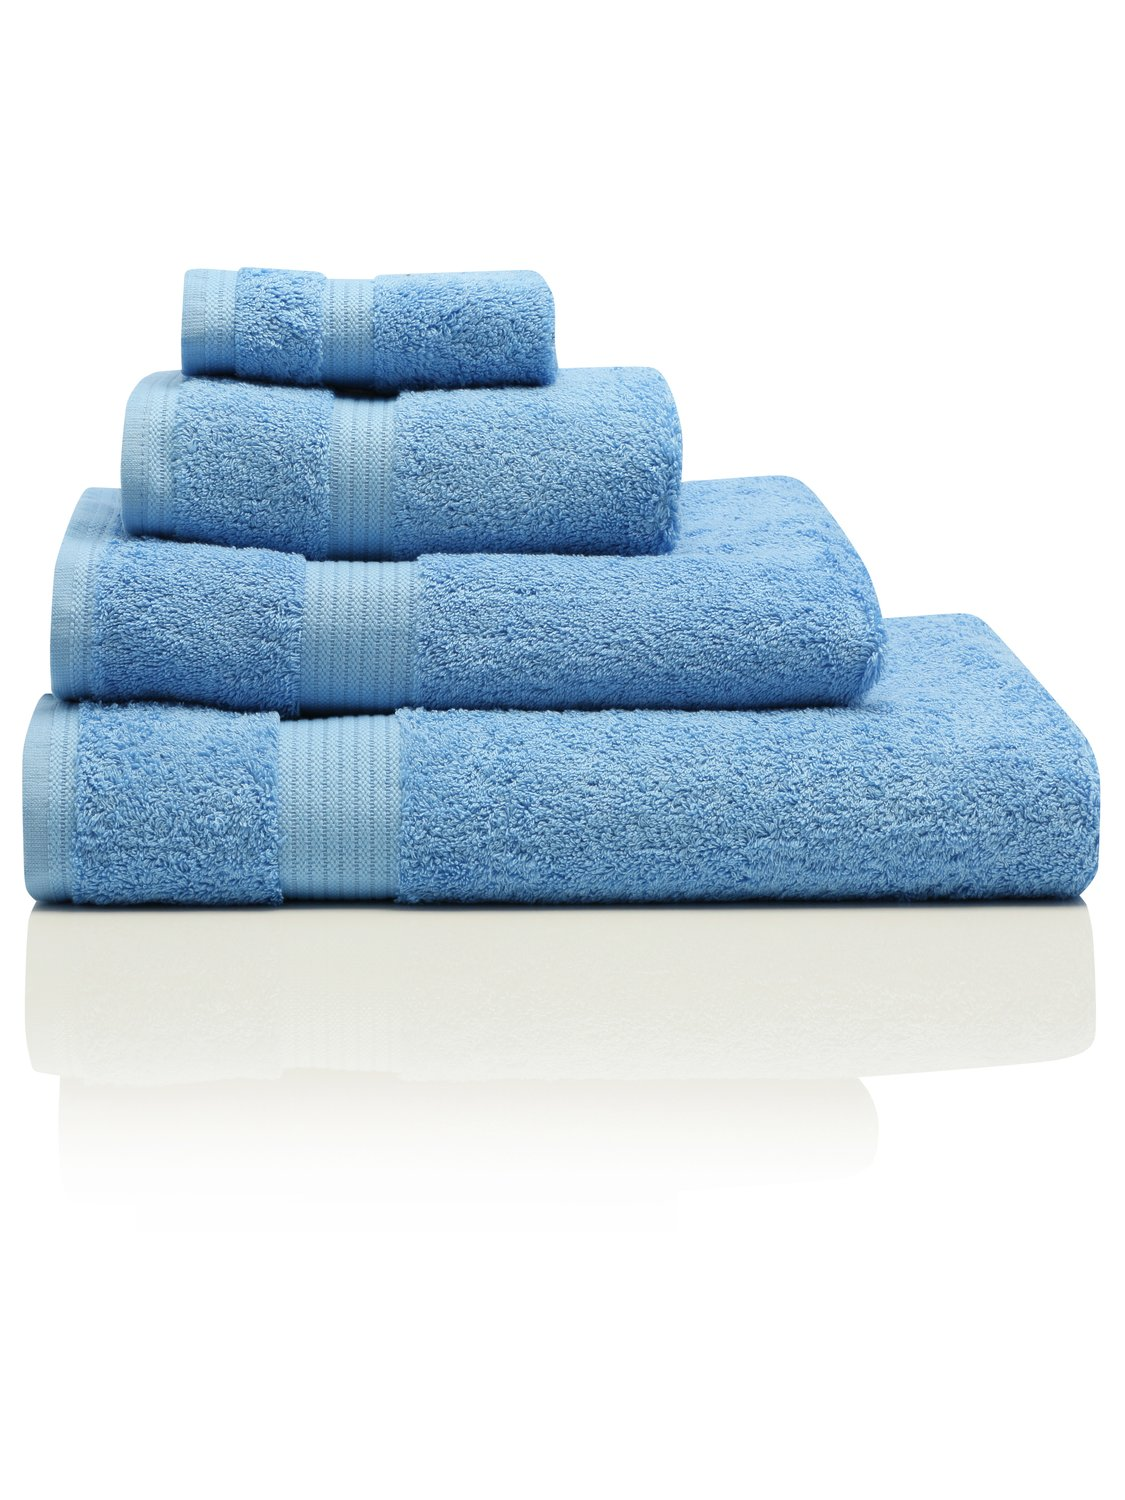 Image of 100% Combed Cotton 580Gsm Luxury Soft And Absorbent Bath Sheet - Sea Blue